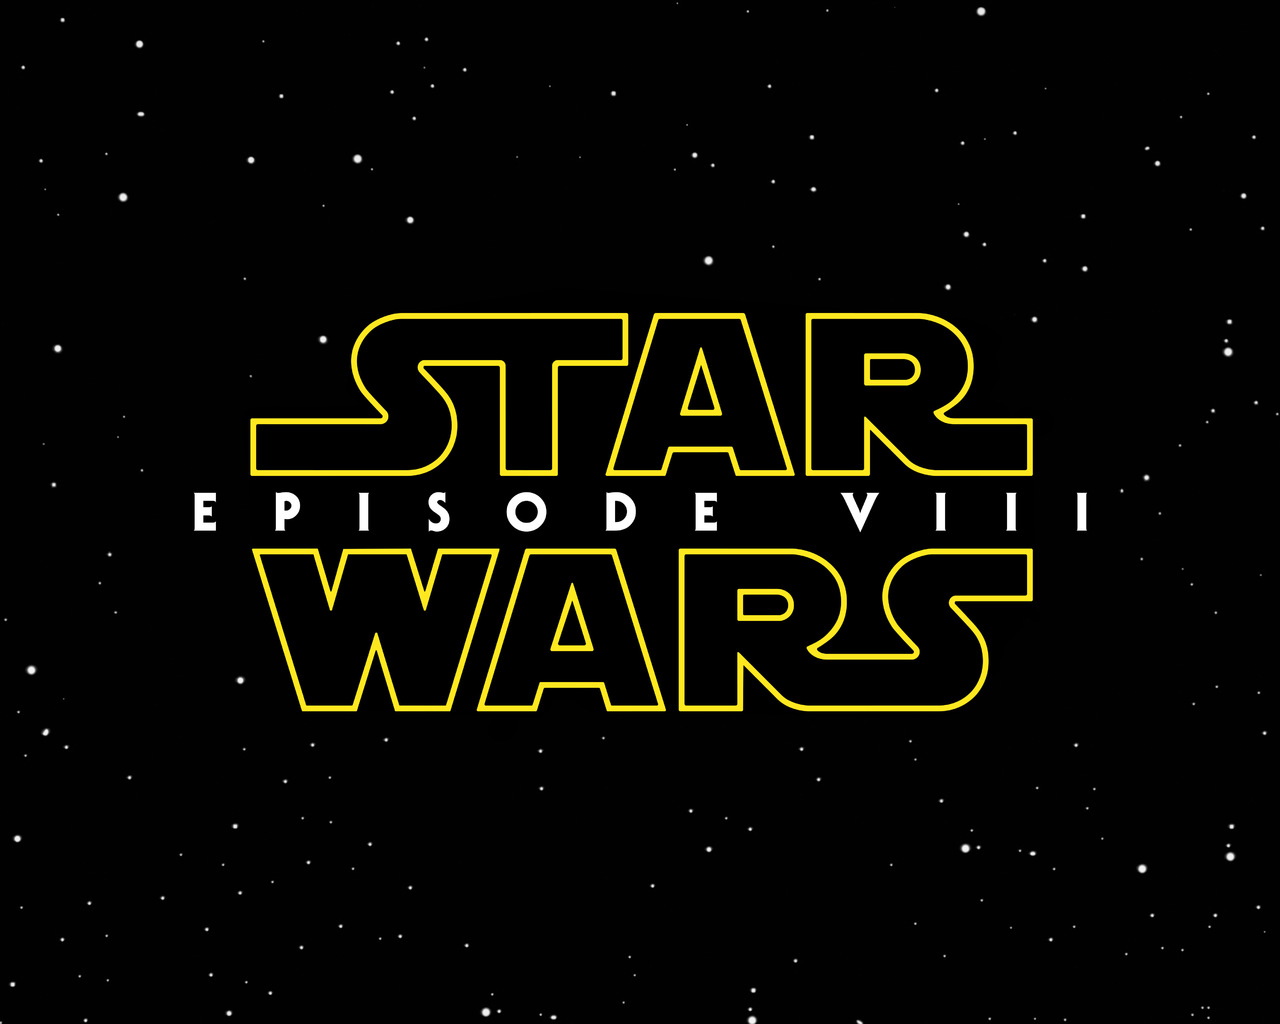 1280x1024 Star Wars Episode Viii 2017 1280x1024 Resolution Hd 4k Wallpapers Images Backgrounds Photos And Pictures